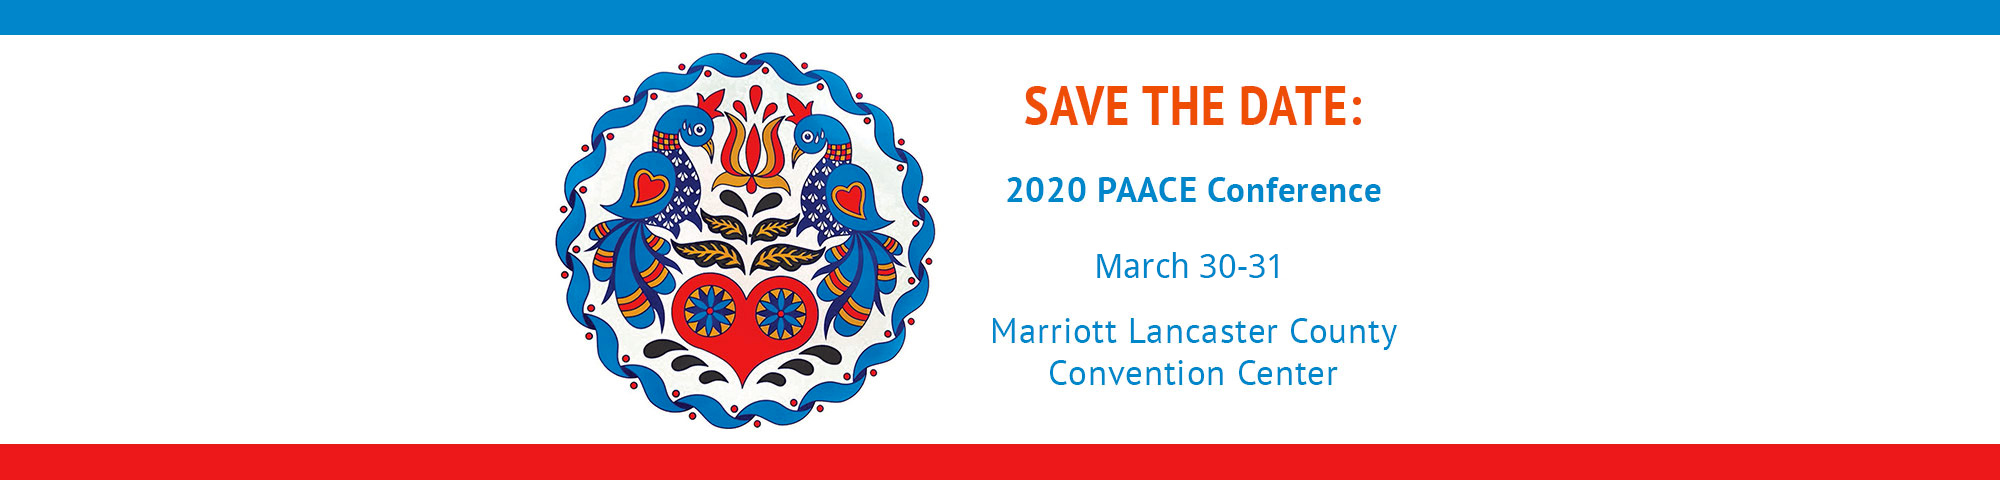 2020 PAACE Conference